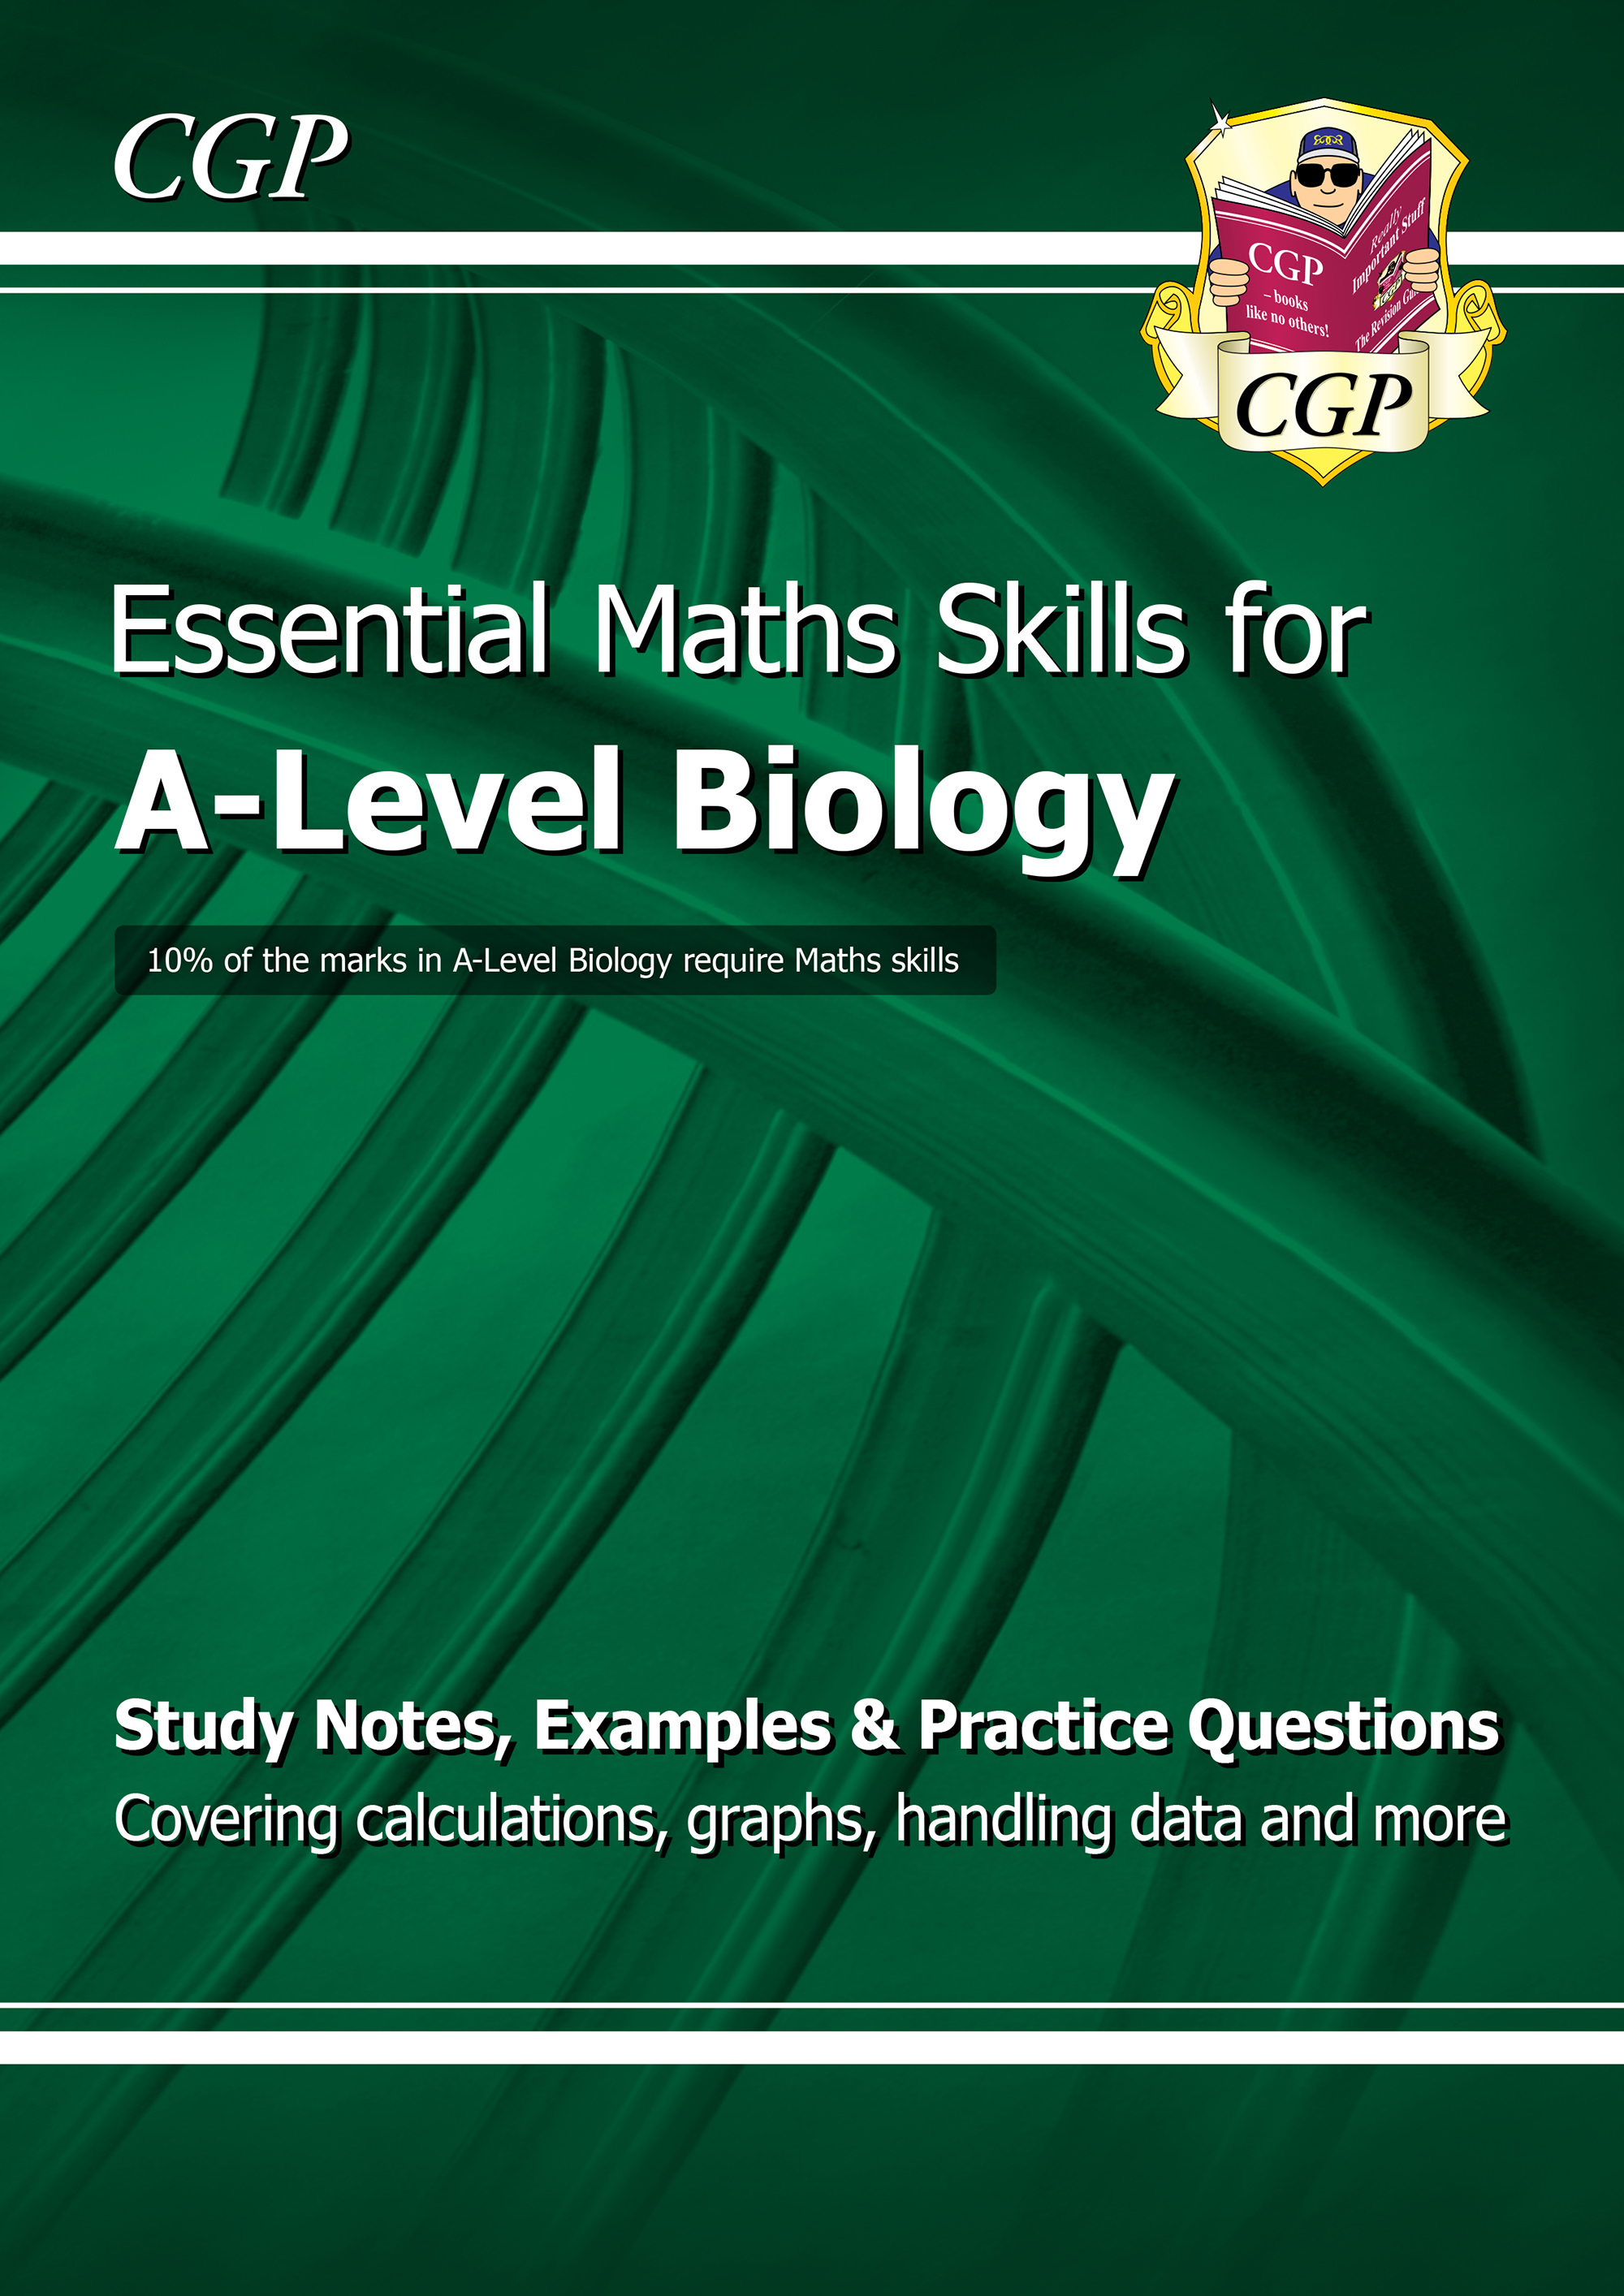 BMR71DK - A-Level Biology: Essential Maths Skills